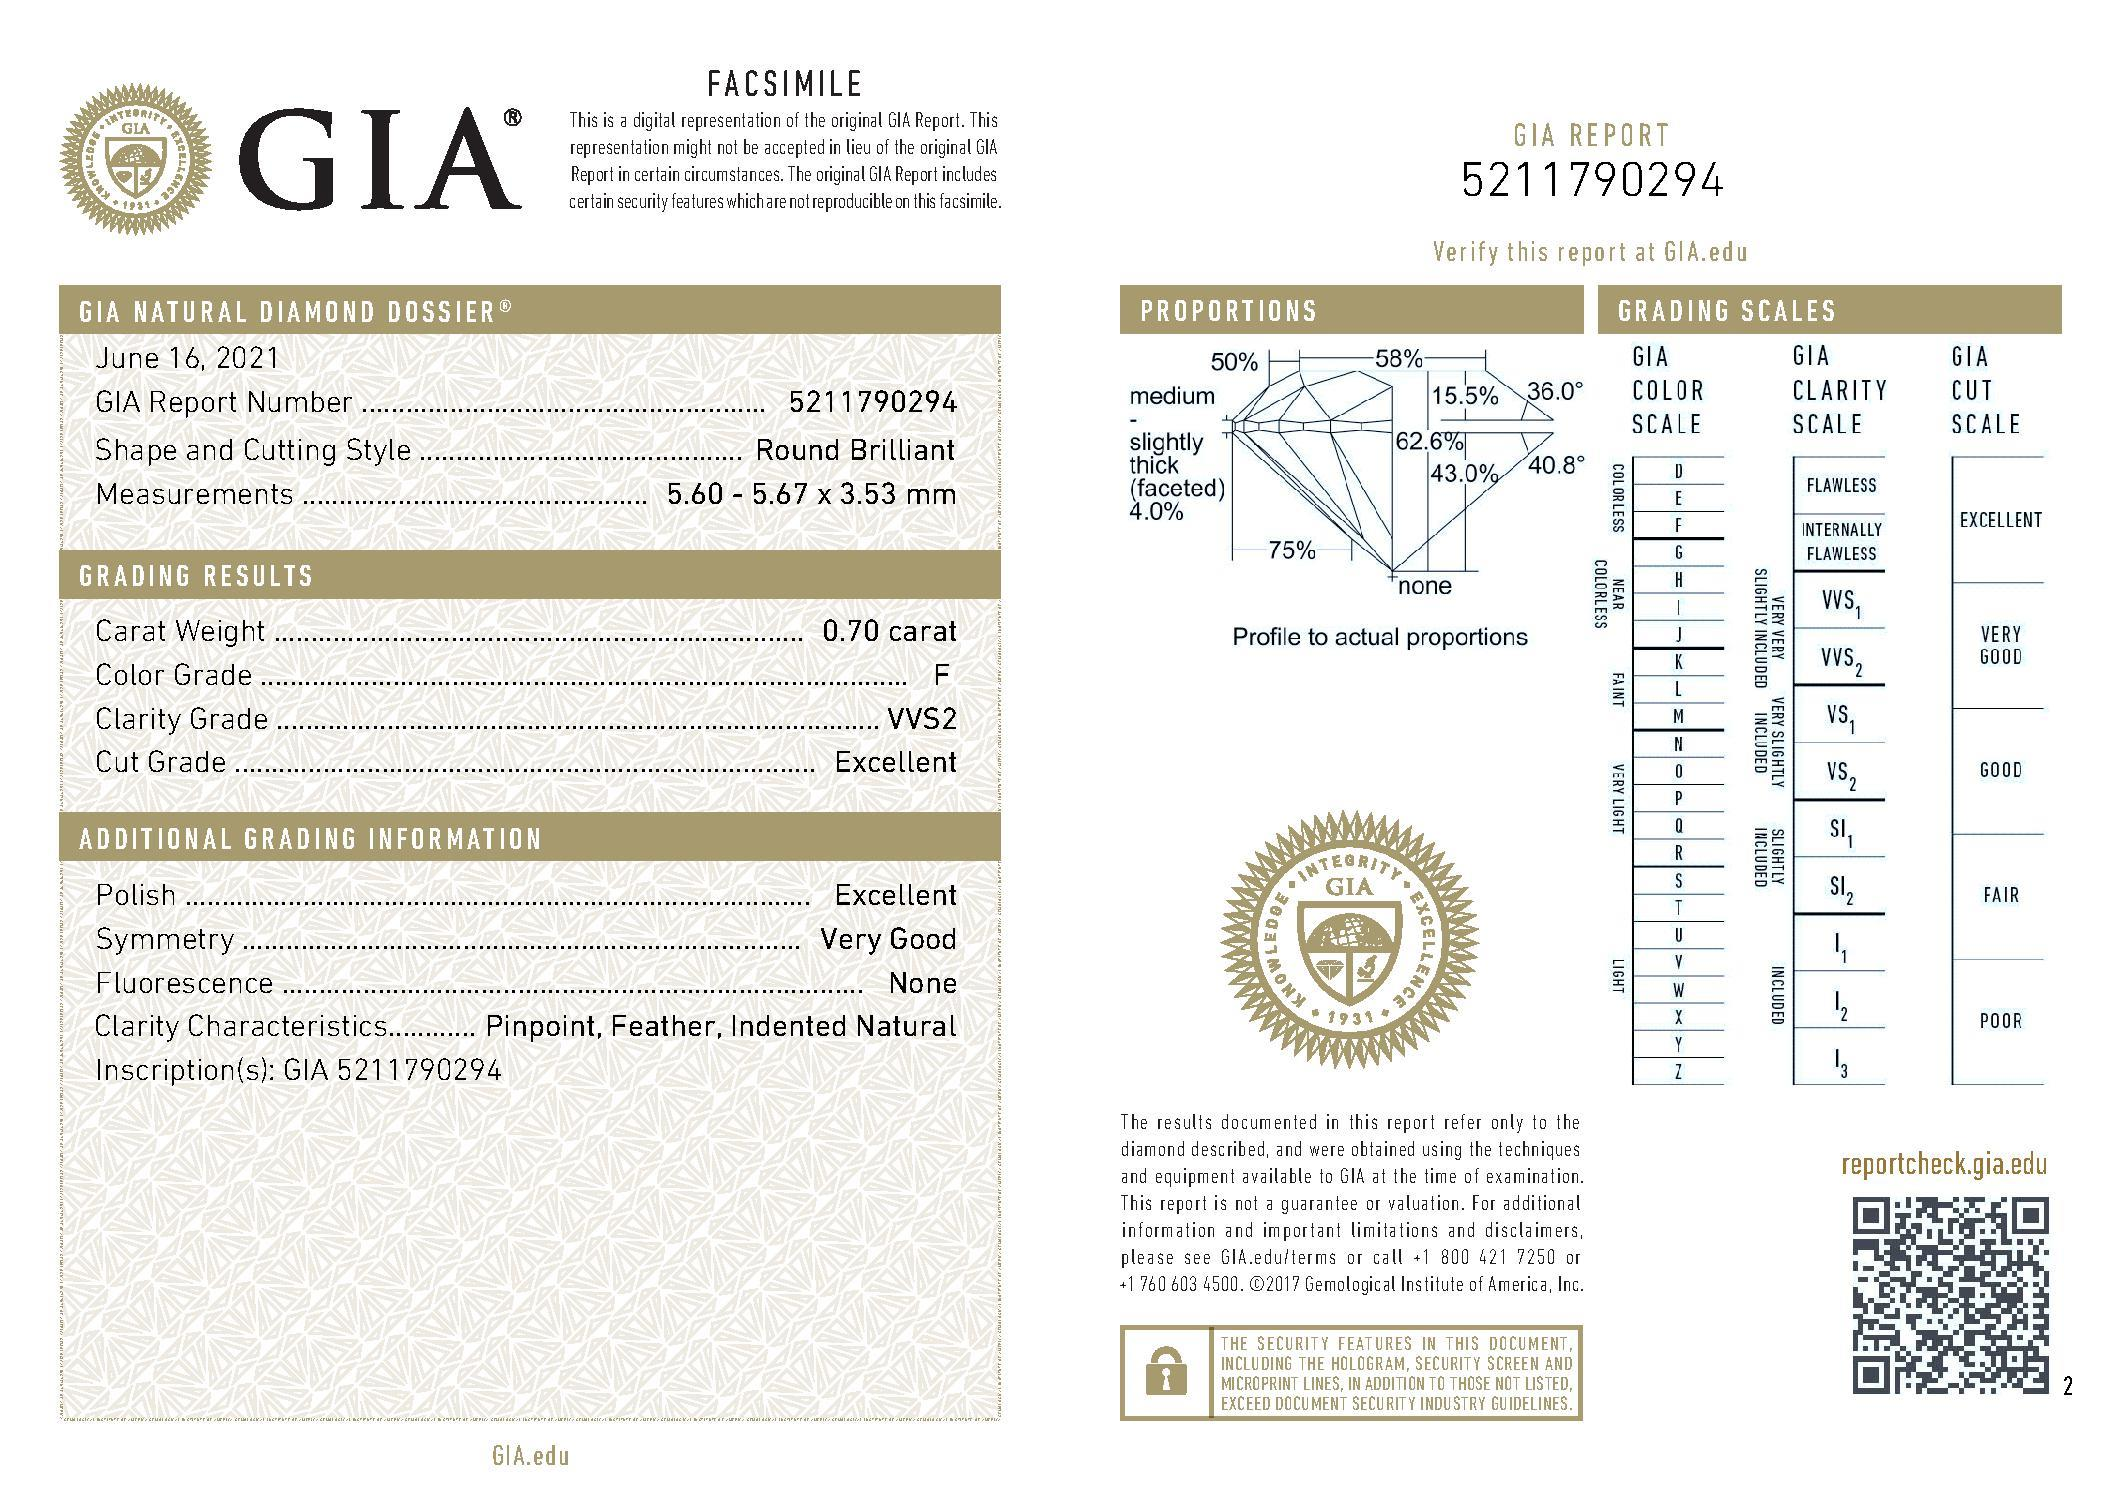 This is a 0.70 carat round shape, F color, VVS2 clarity natural diamond accompanied by a GIA grading report.